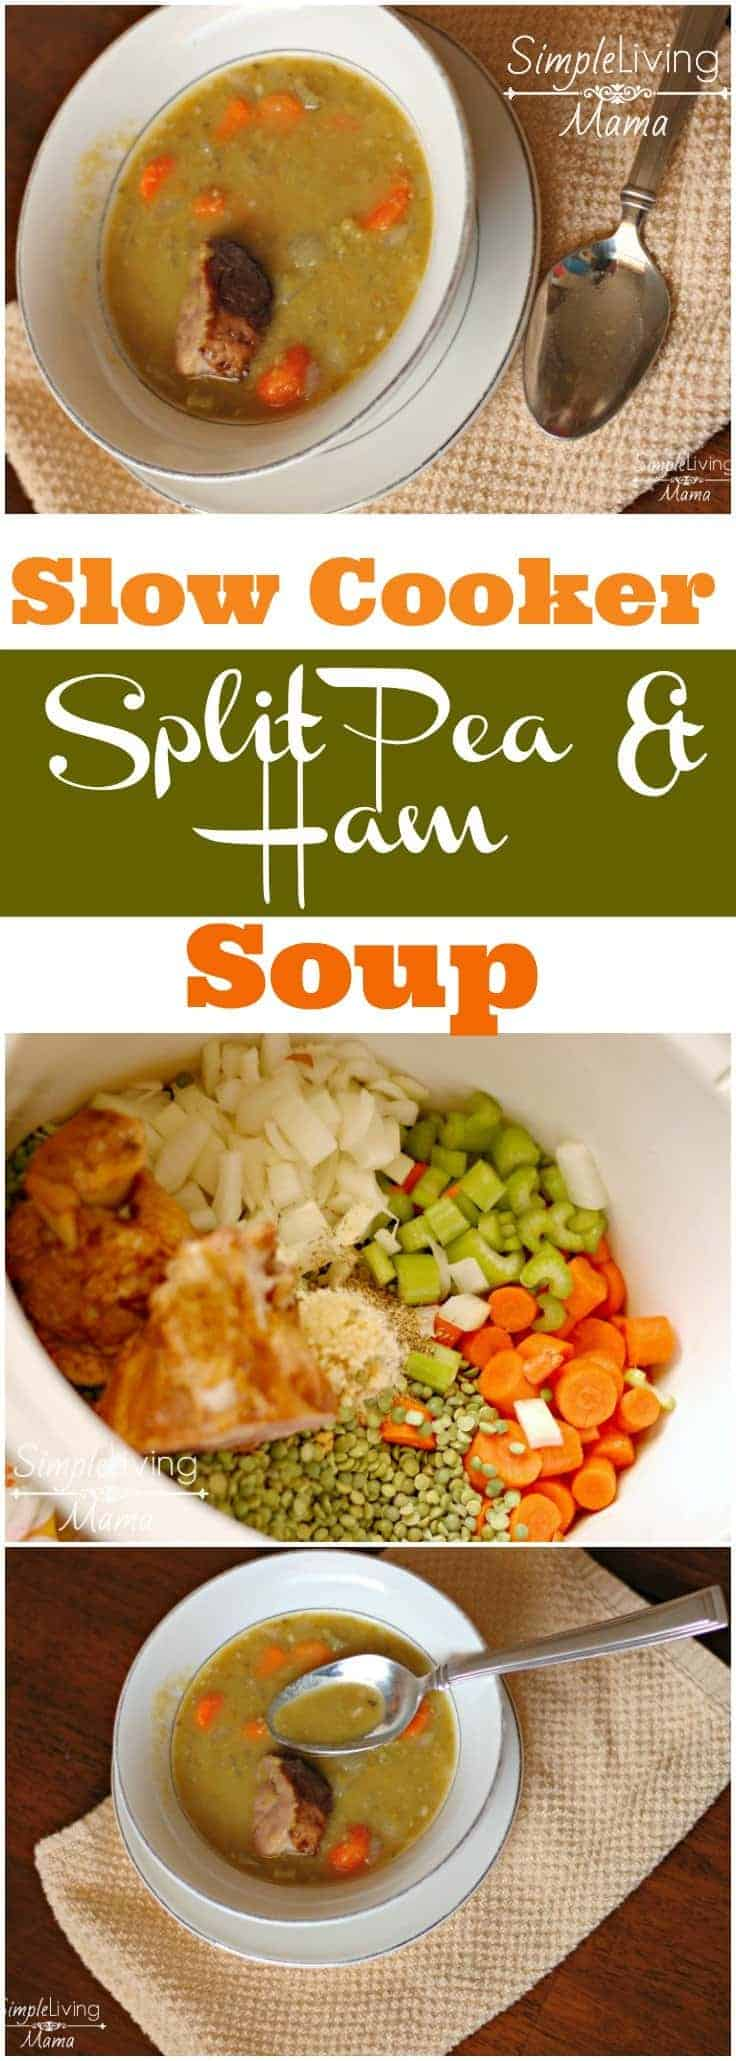 This delicious slow cooker split pea soup with ham is the BEST slow cooker split pea soup recipe you will find. This split pea soup is simple, hearty, and filling!